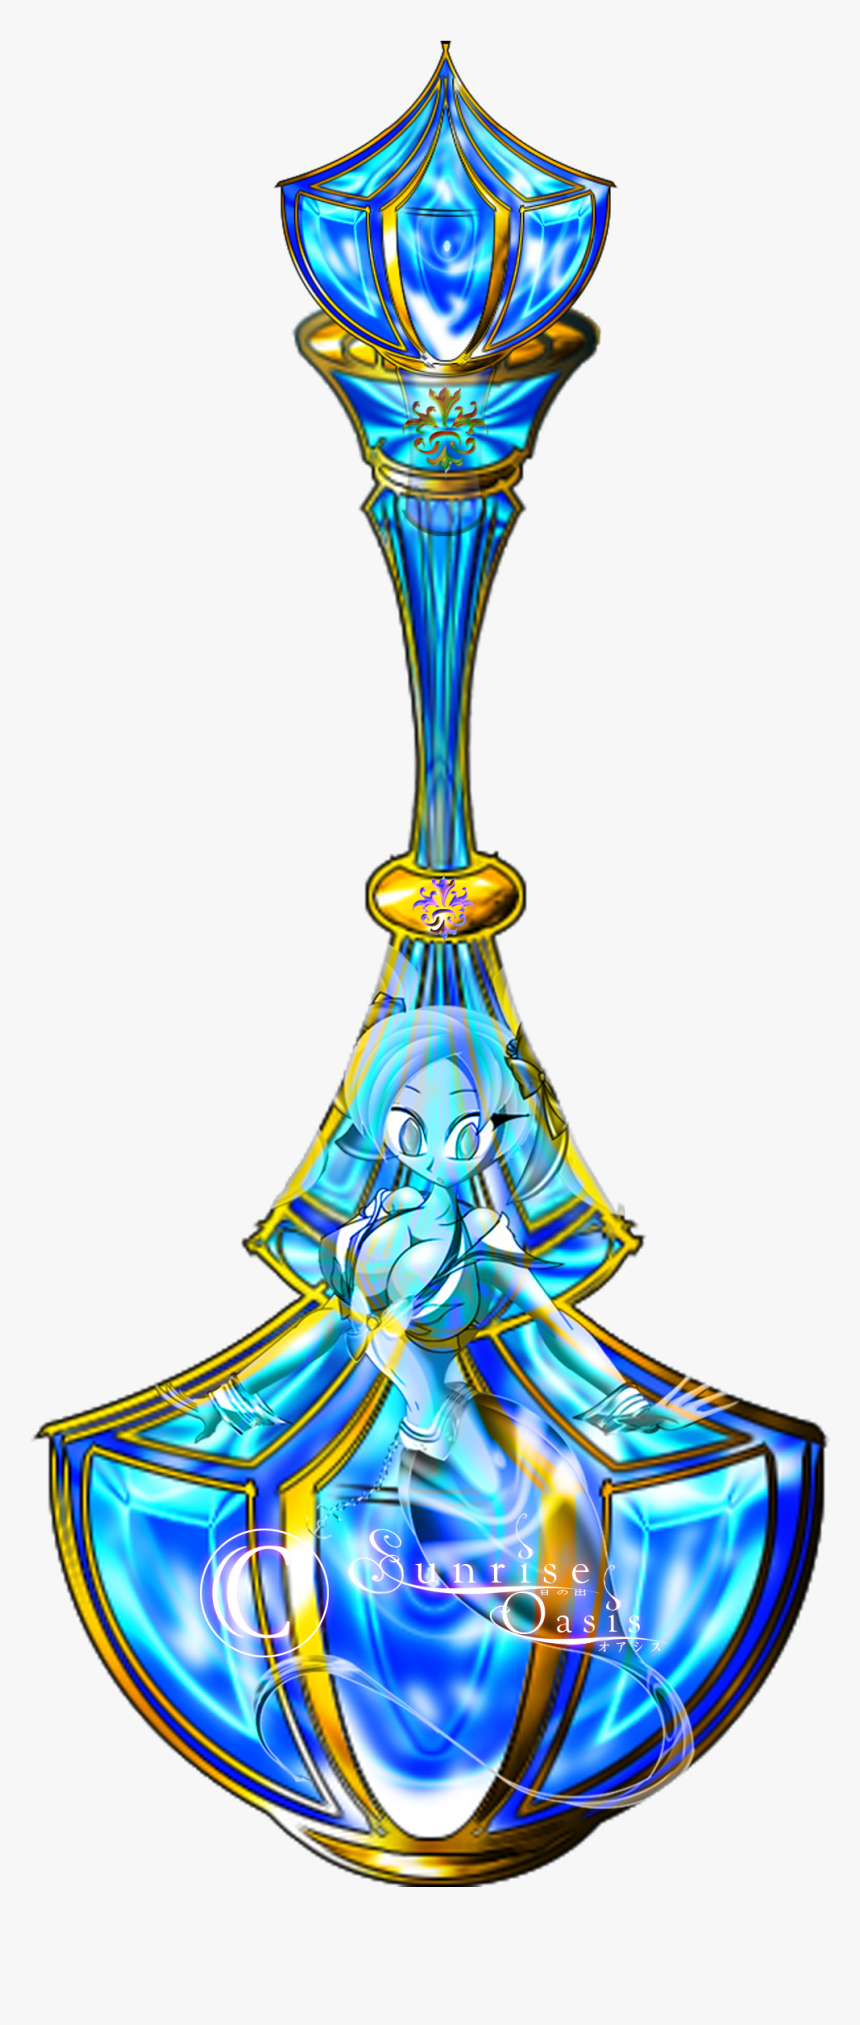 Genie Kasumi In A Lure Bottle By Sunrise On - Genie Bottle Drawing, HD Png Download, Free Download